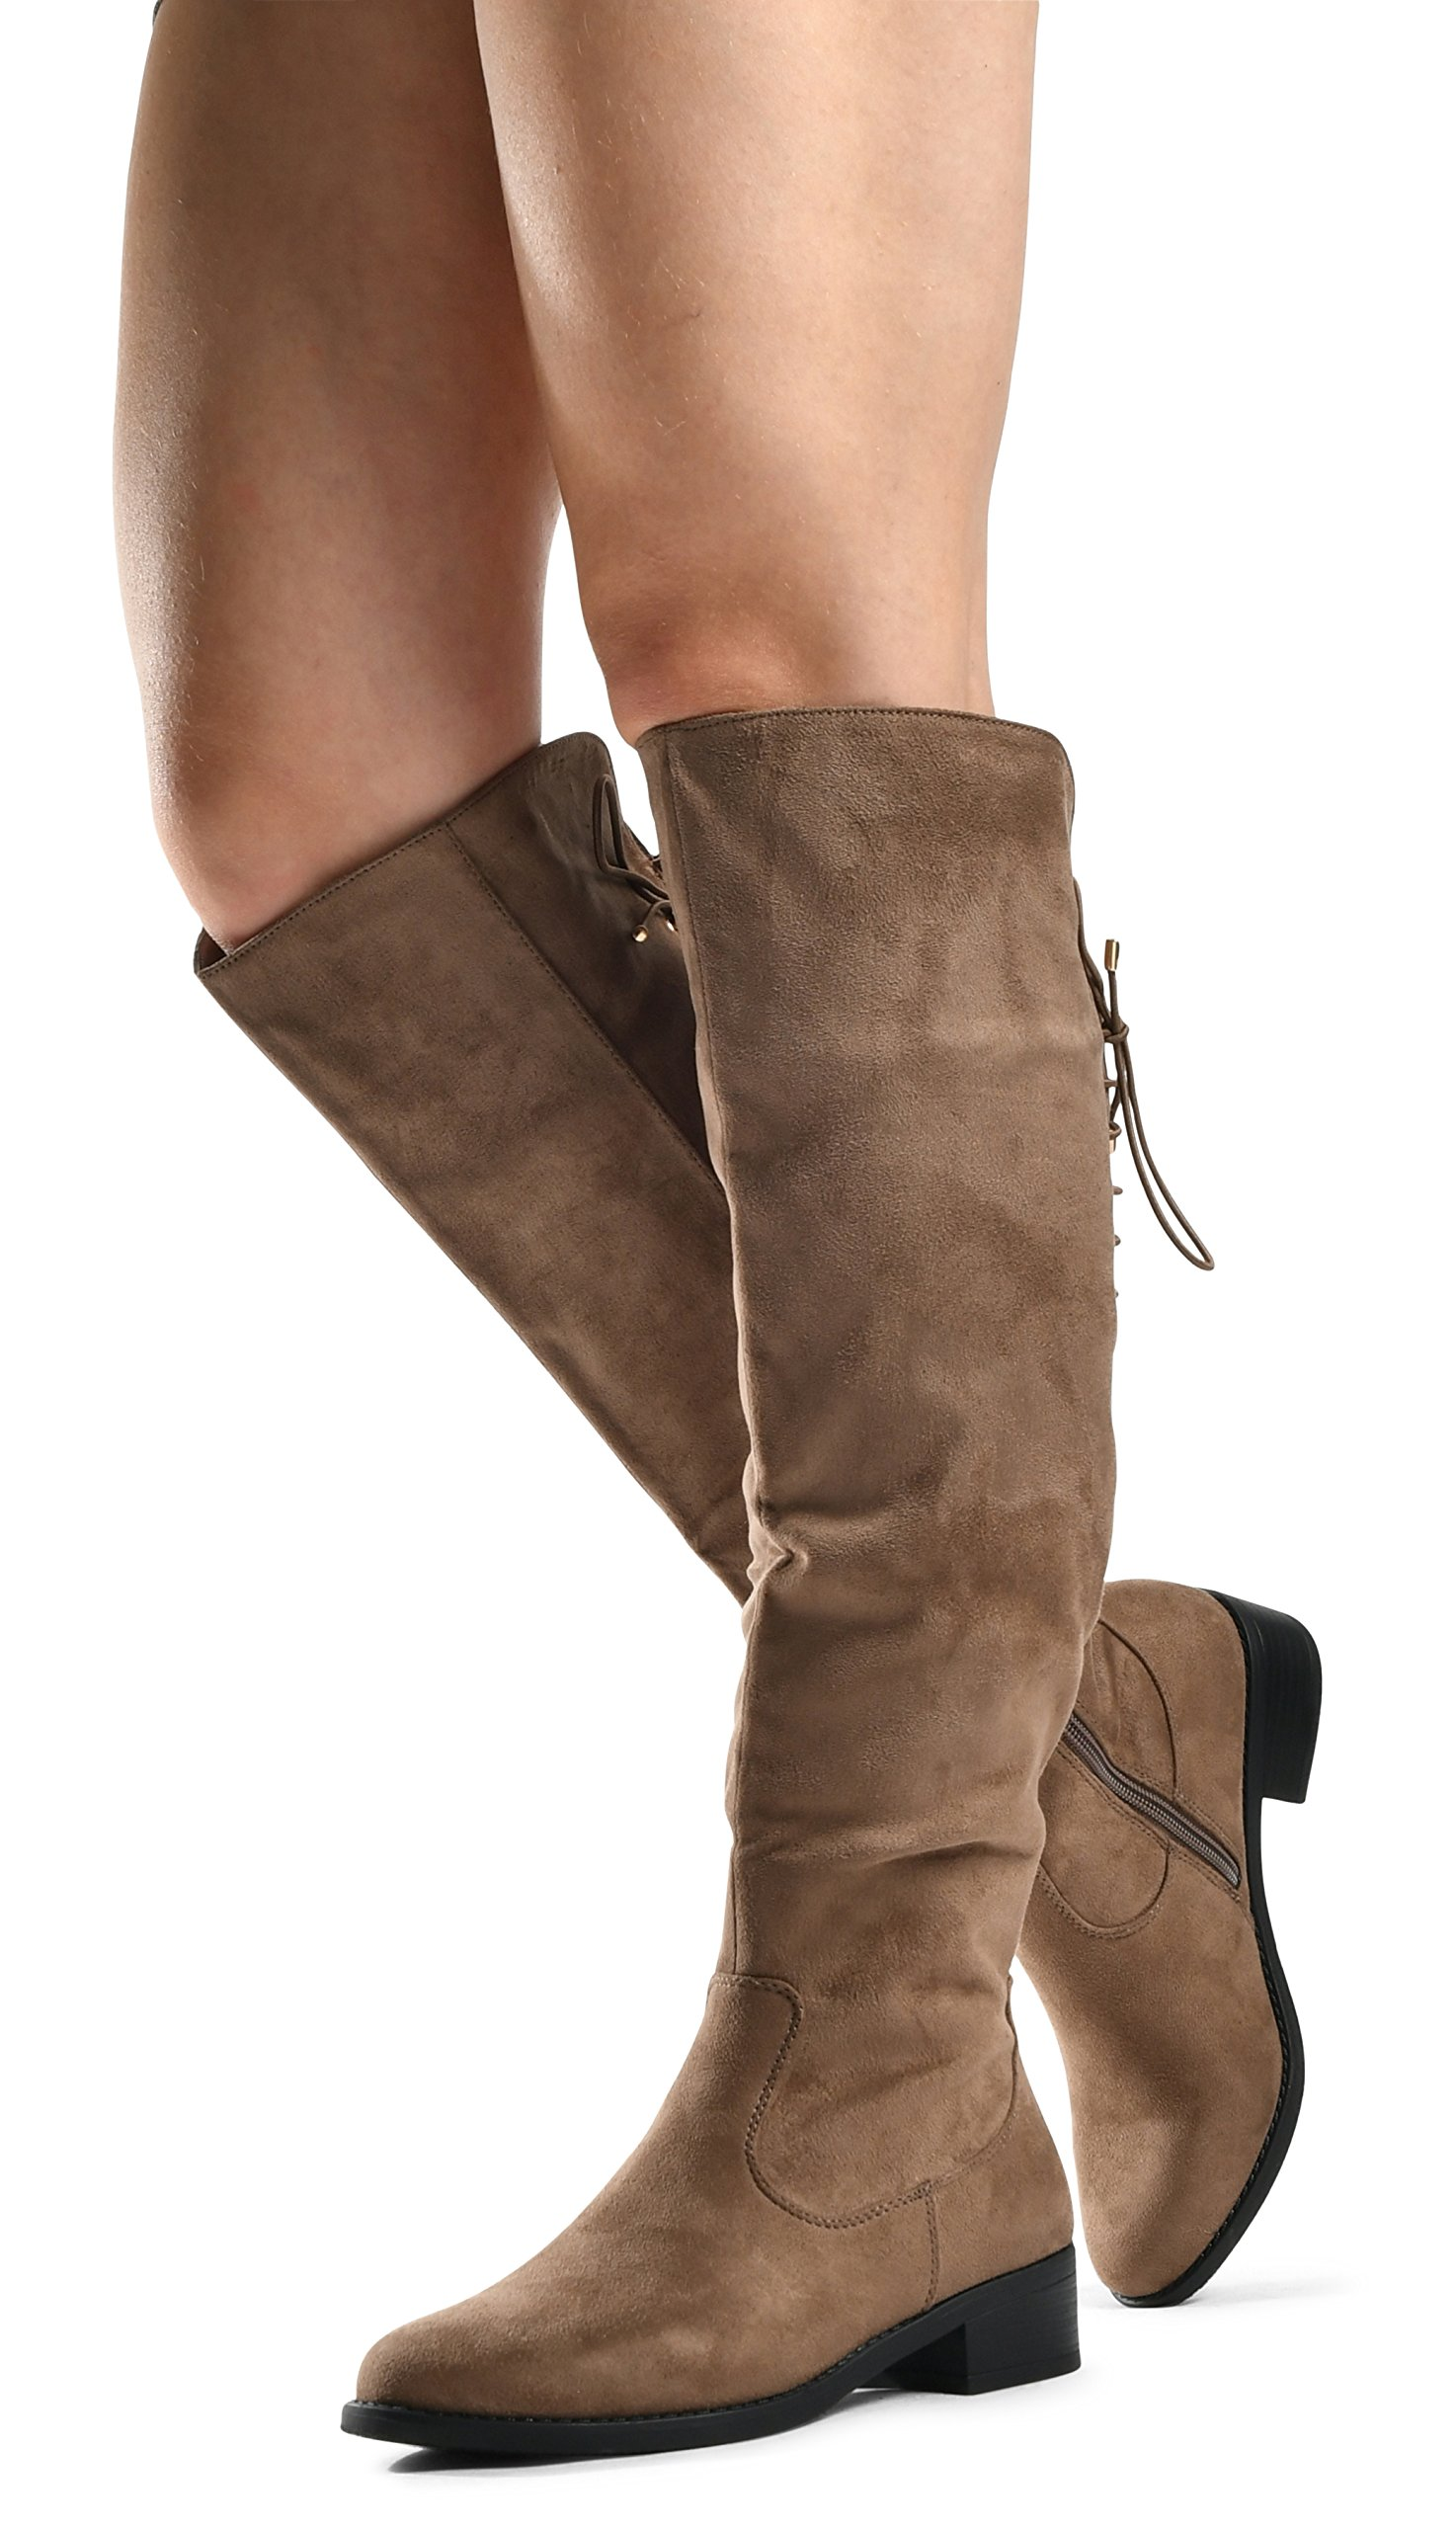 LUSTHAVE Women's Knee High Flat Low Heel Lace up Cushioned Lining Drawstring Almond Toe High Tall Boots Dark Taupe 8